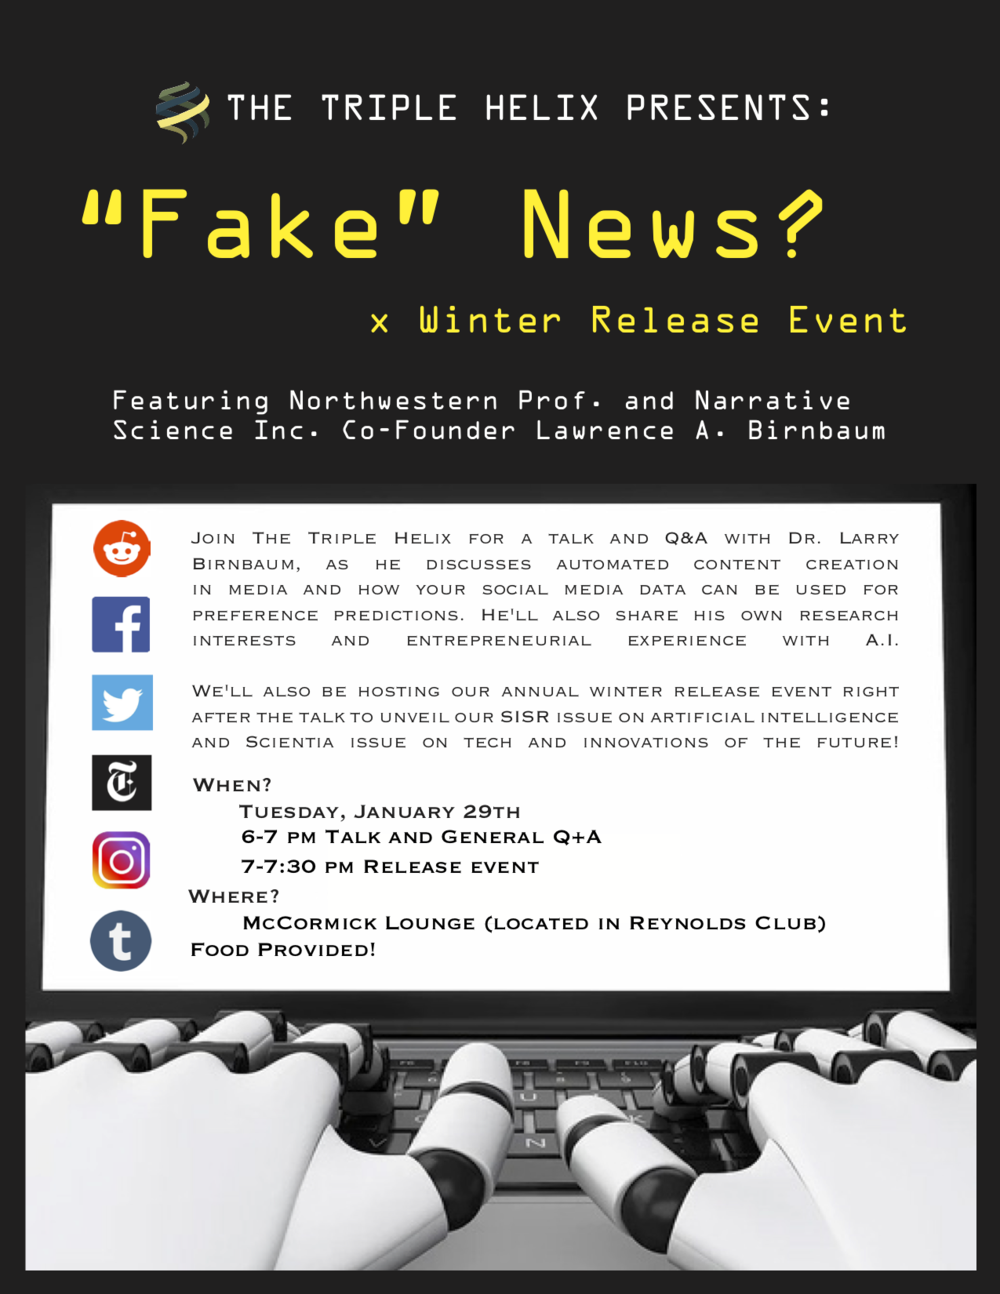 Fake News and Winter Release